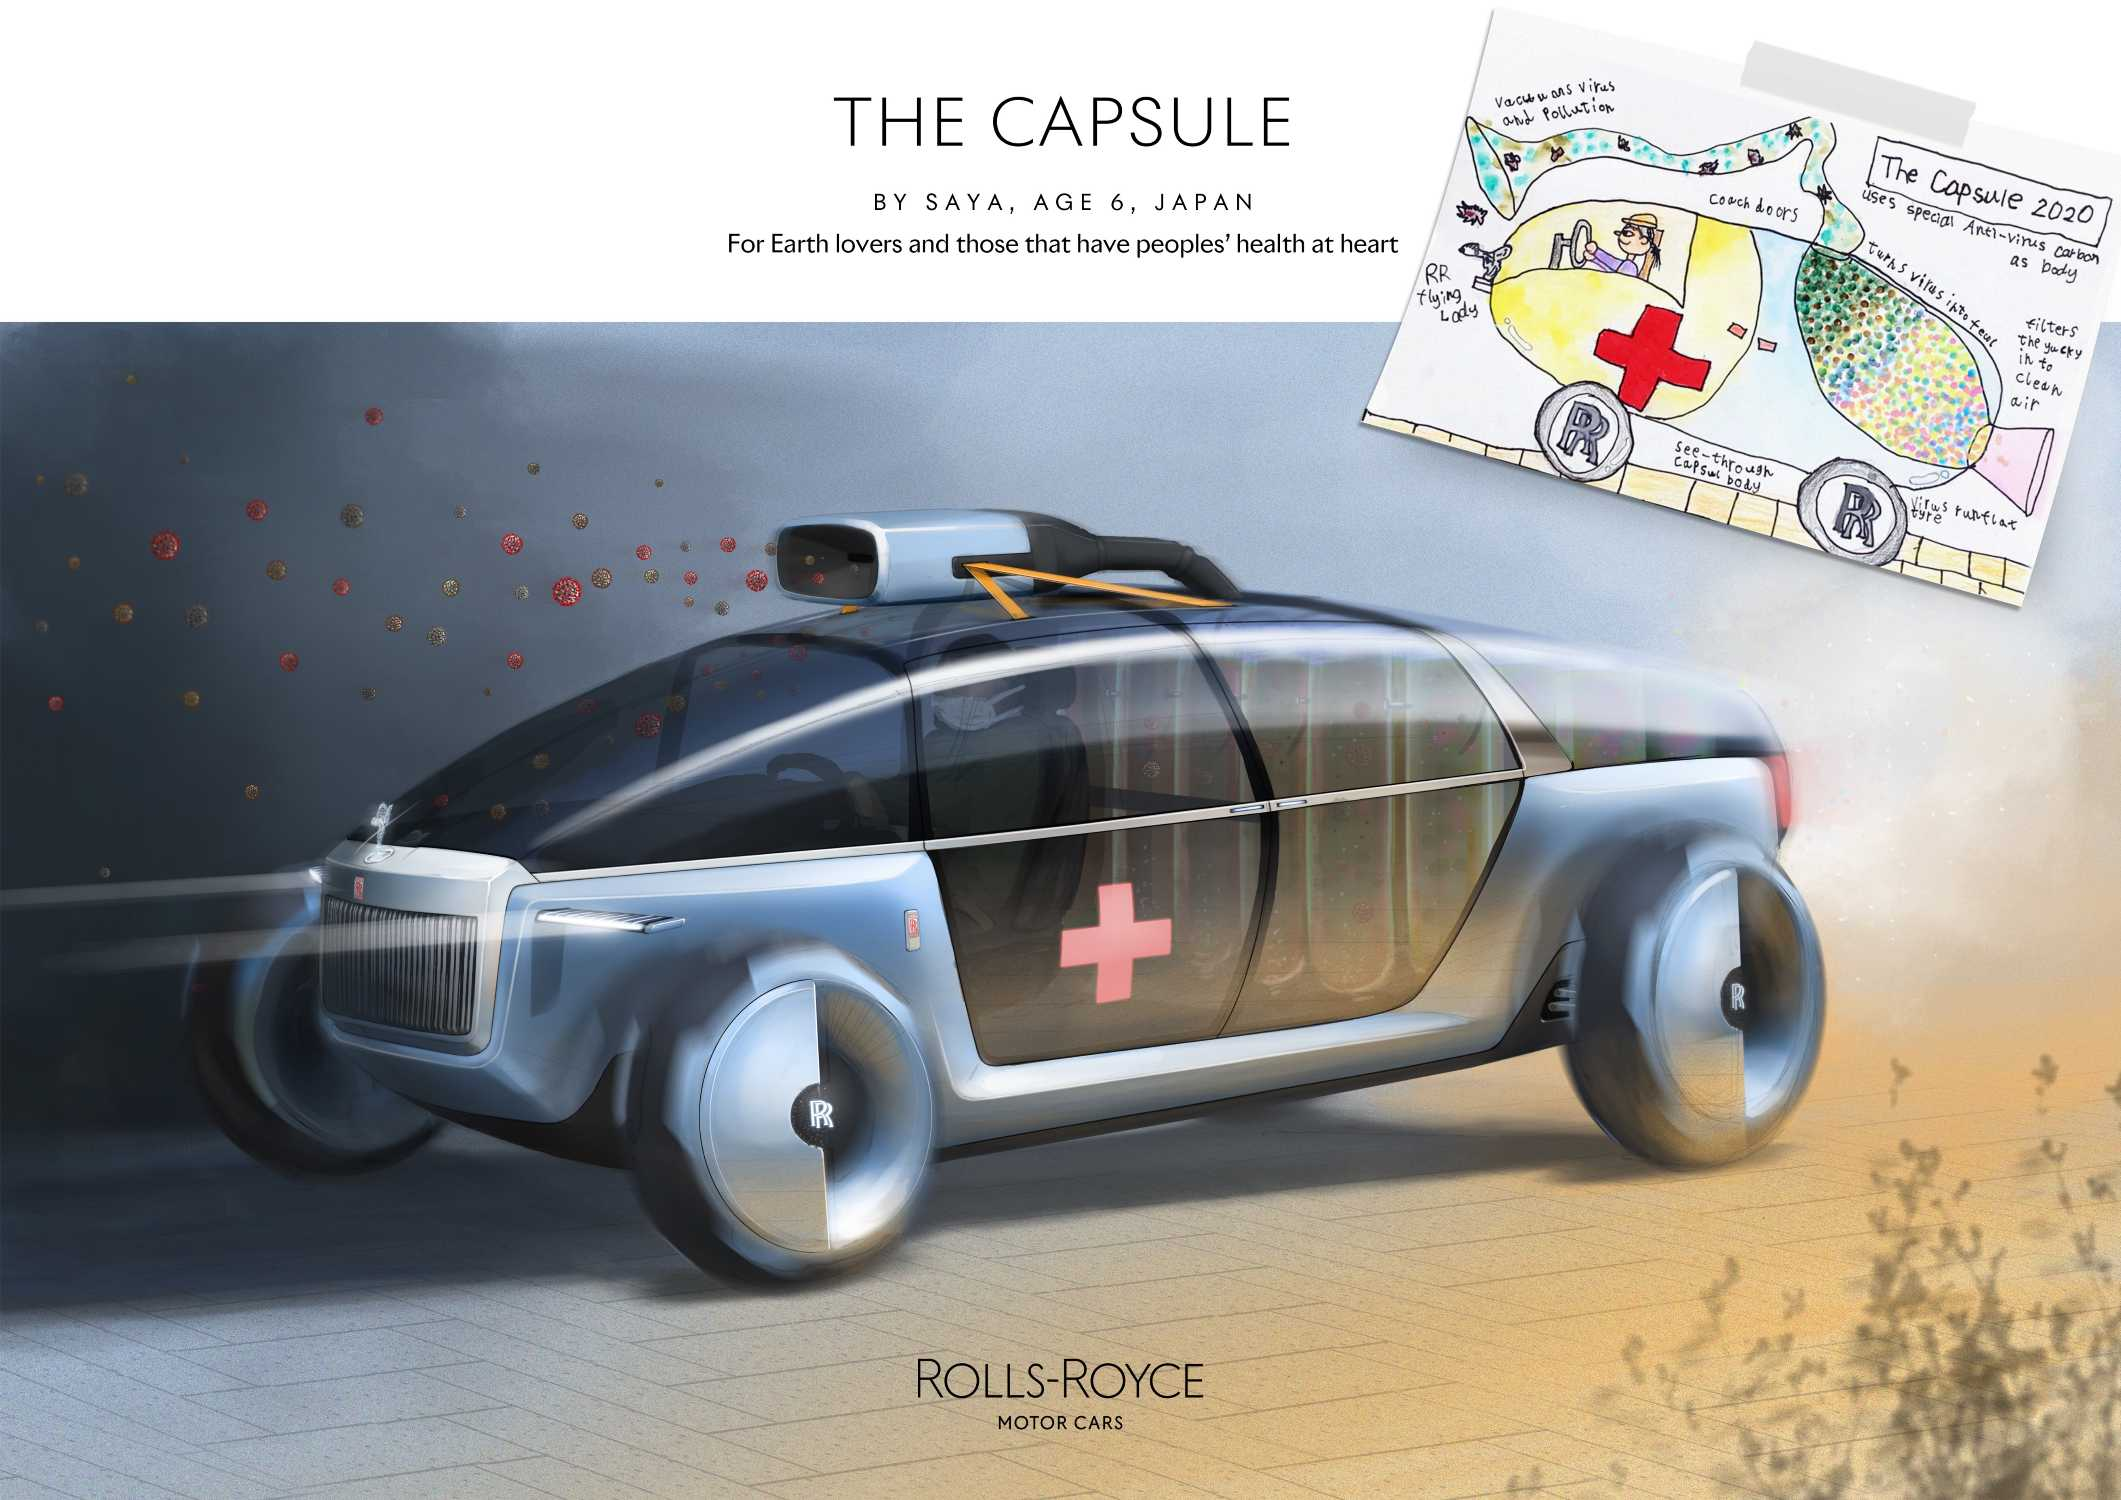 ROLLS-ROYCE CAPSULE, BY SAYA AGE 6, JAPAN. ENVIRONMENT CATEGORY WINNER IN THE ROLLS-ROYCE YOUNG DESIGNER COMPETITION.